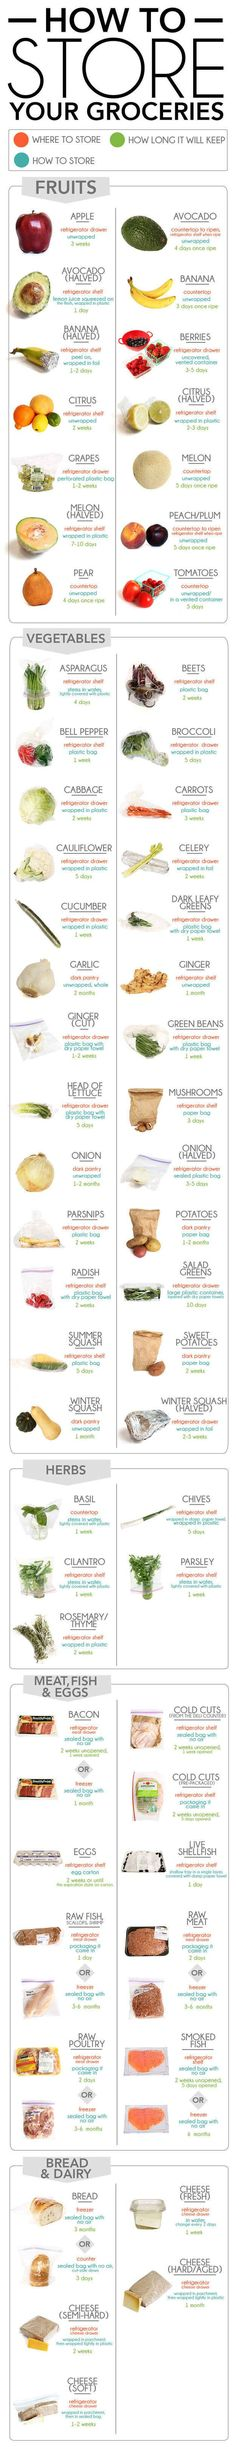 24 diagrams for healthy eating. Tons of information!